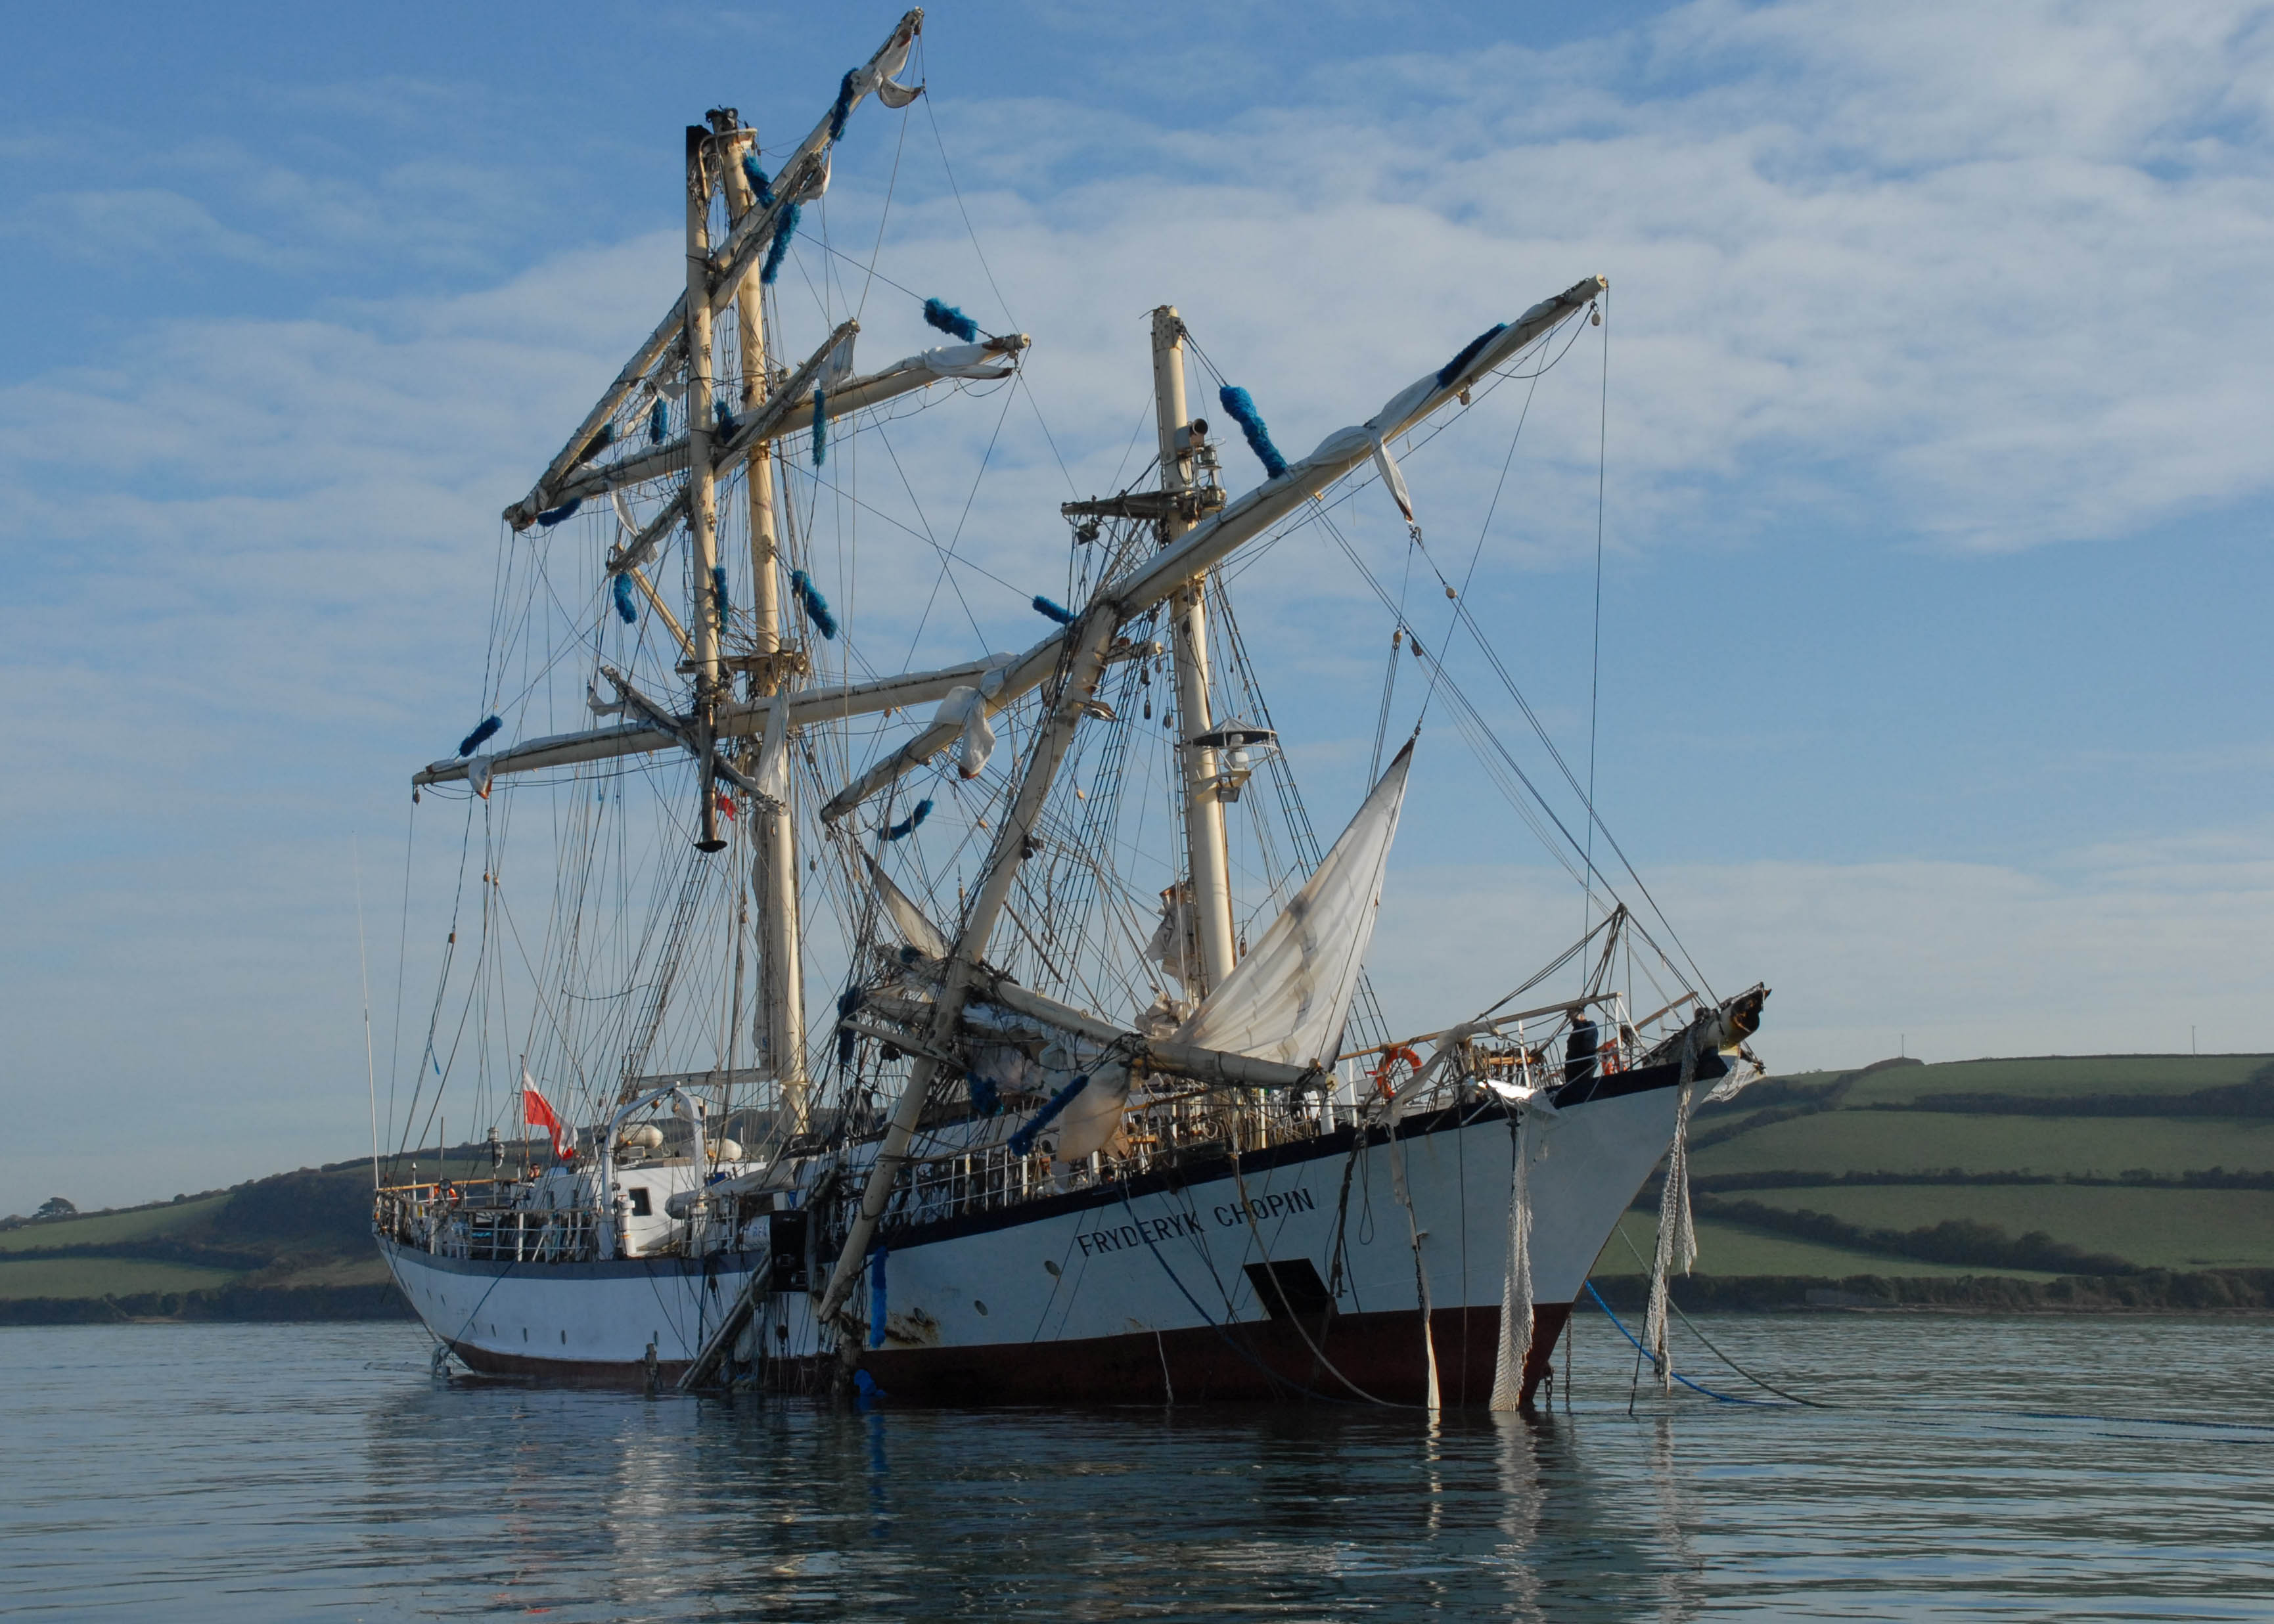 Tall Ship Dismasted Off Scilly Isles Yachting Monthly